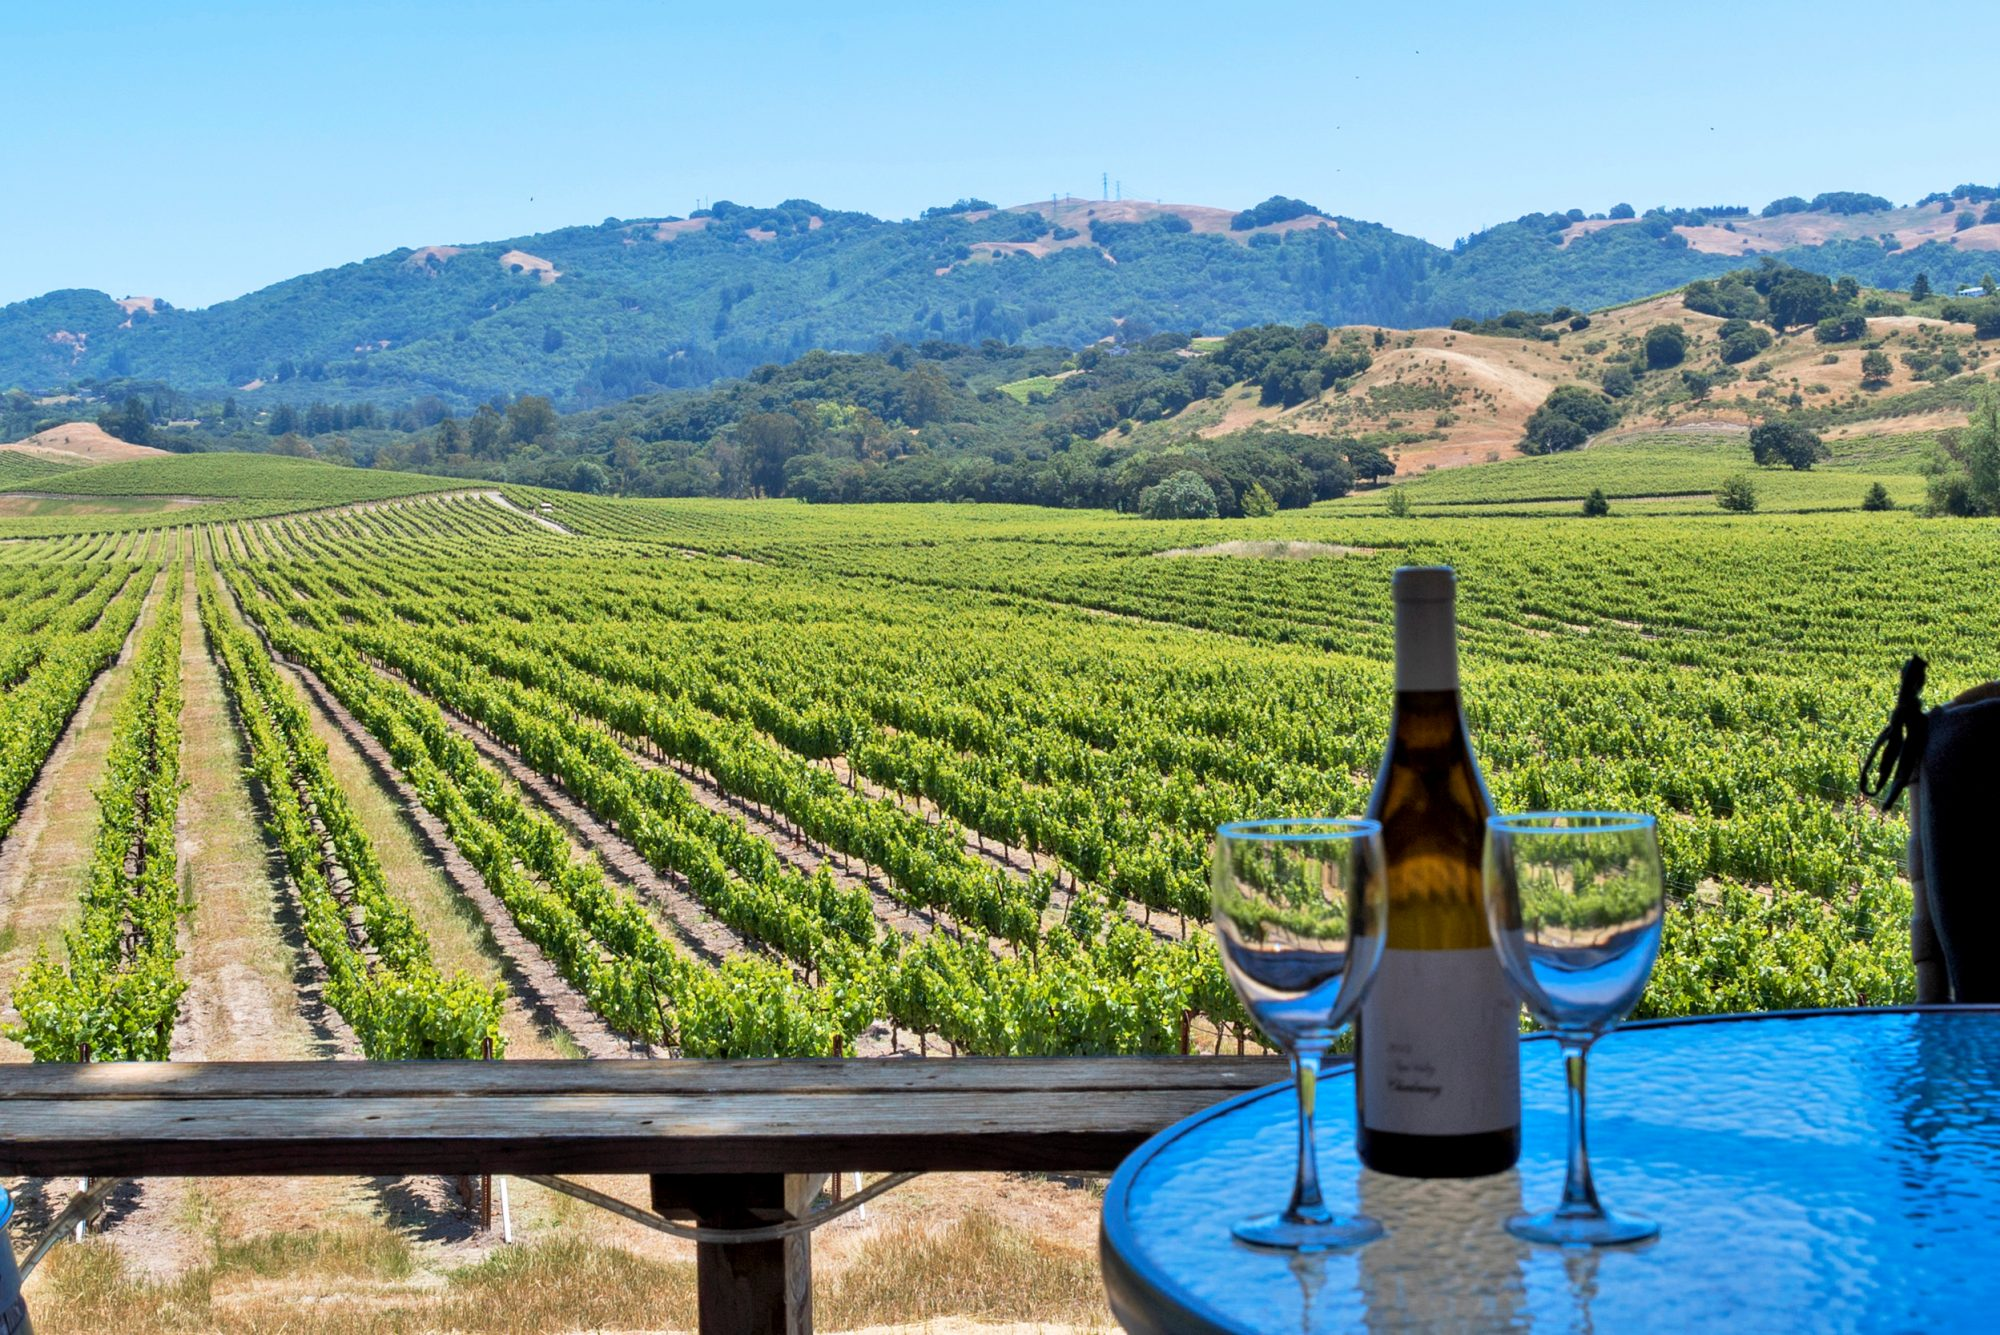 48 Hours in Sonoma: Where to Eat, Drink, and Stay This Summer